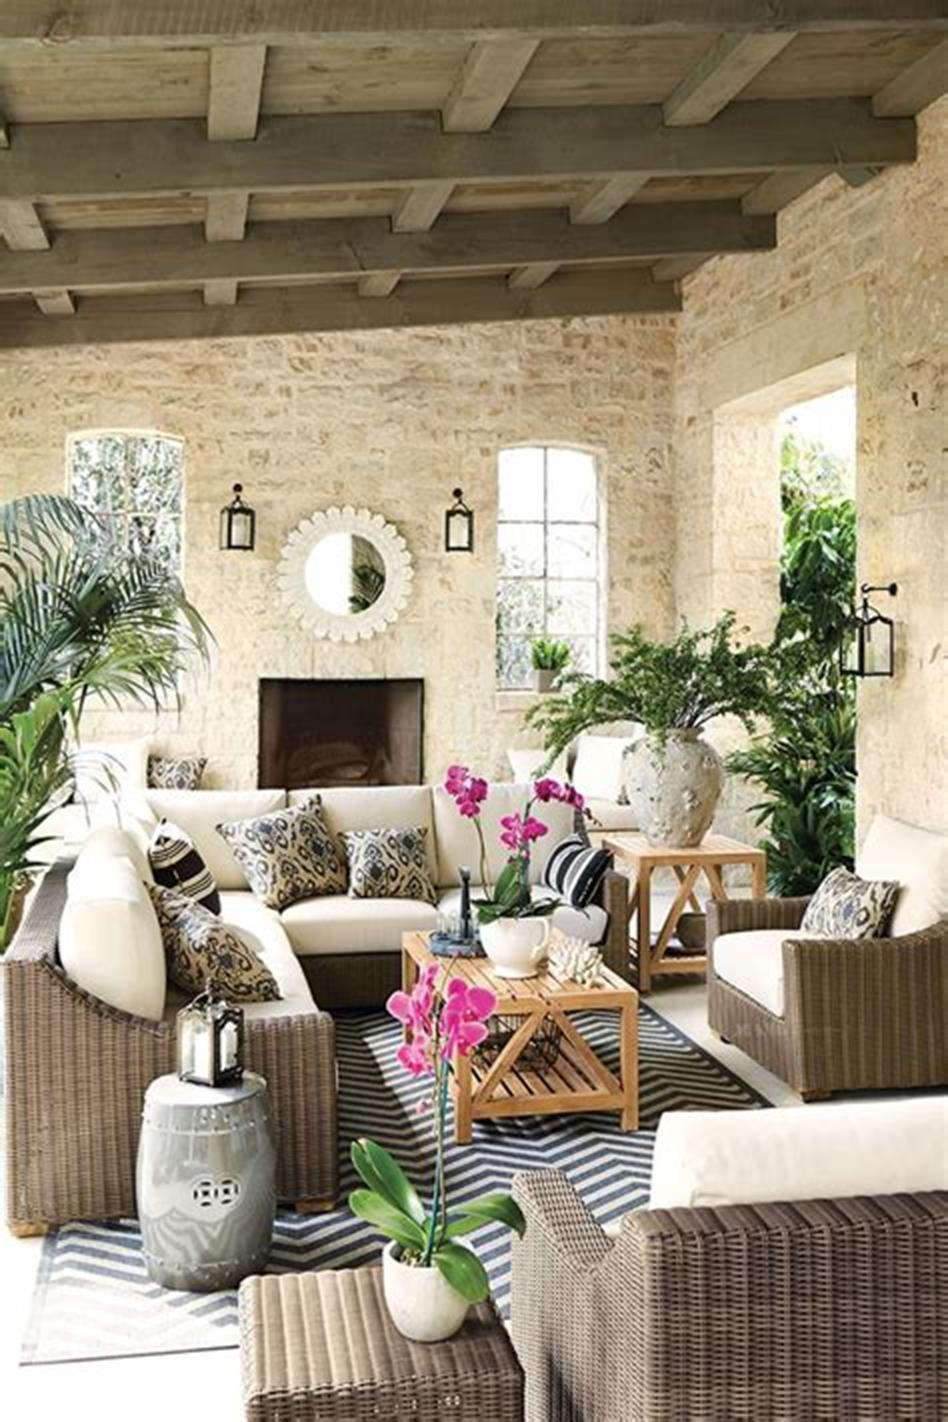 45 Perfect Rustic Porch Furniture Ideas for 2019 15